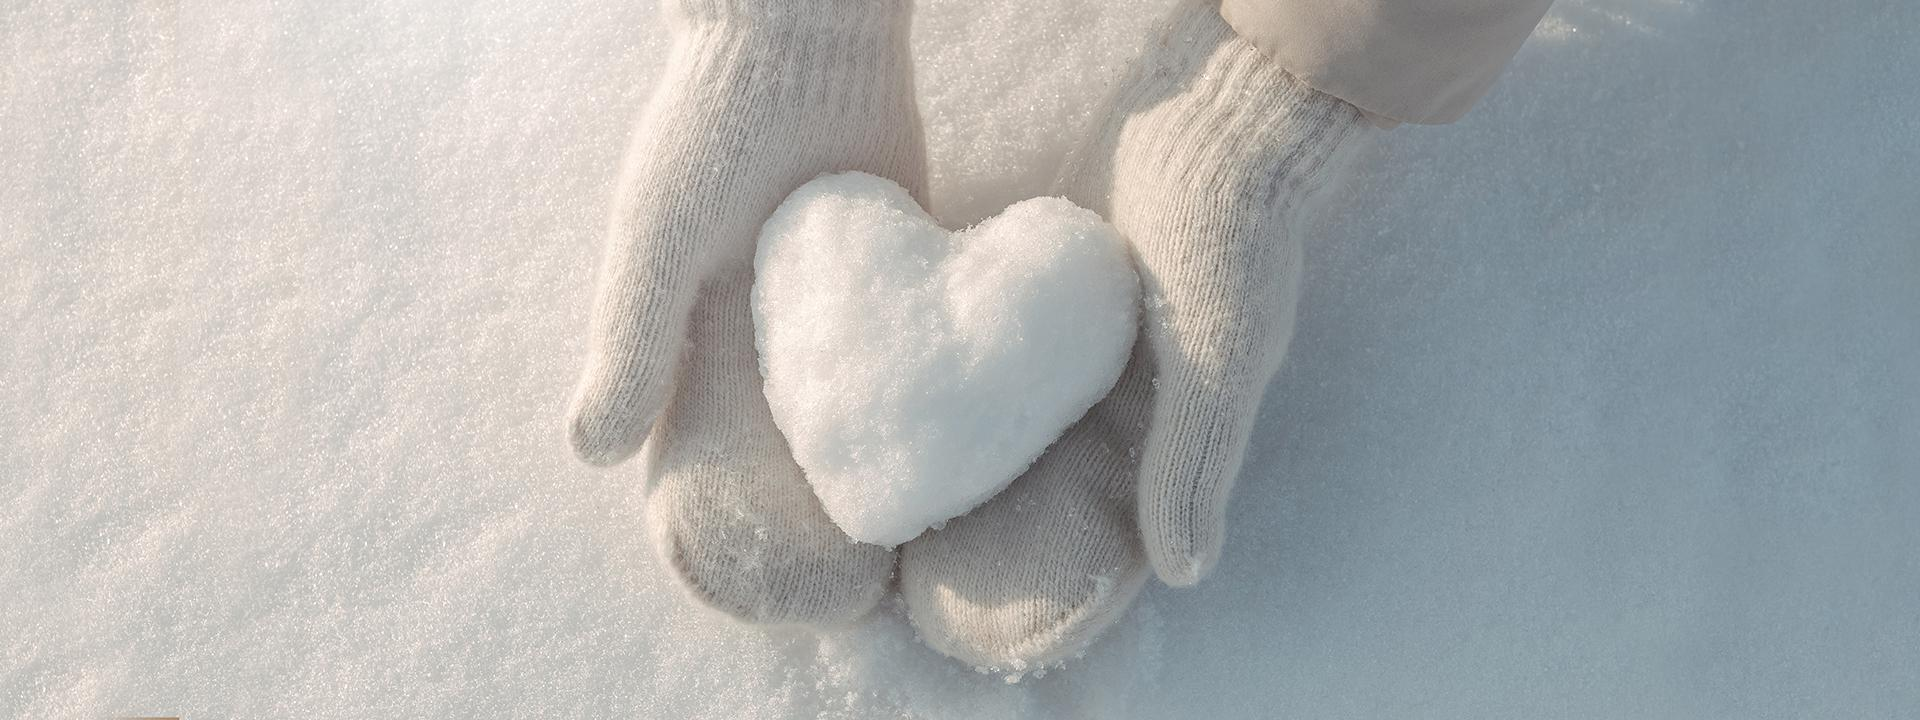 A child wearing white mittens delicately holding a heart-shaped snowball against a snowy background